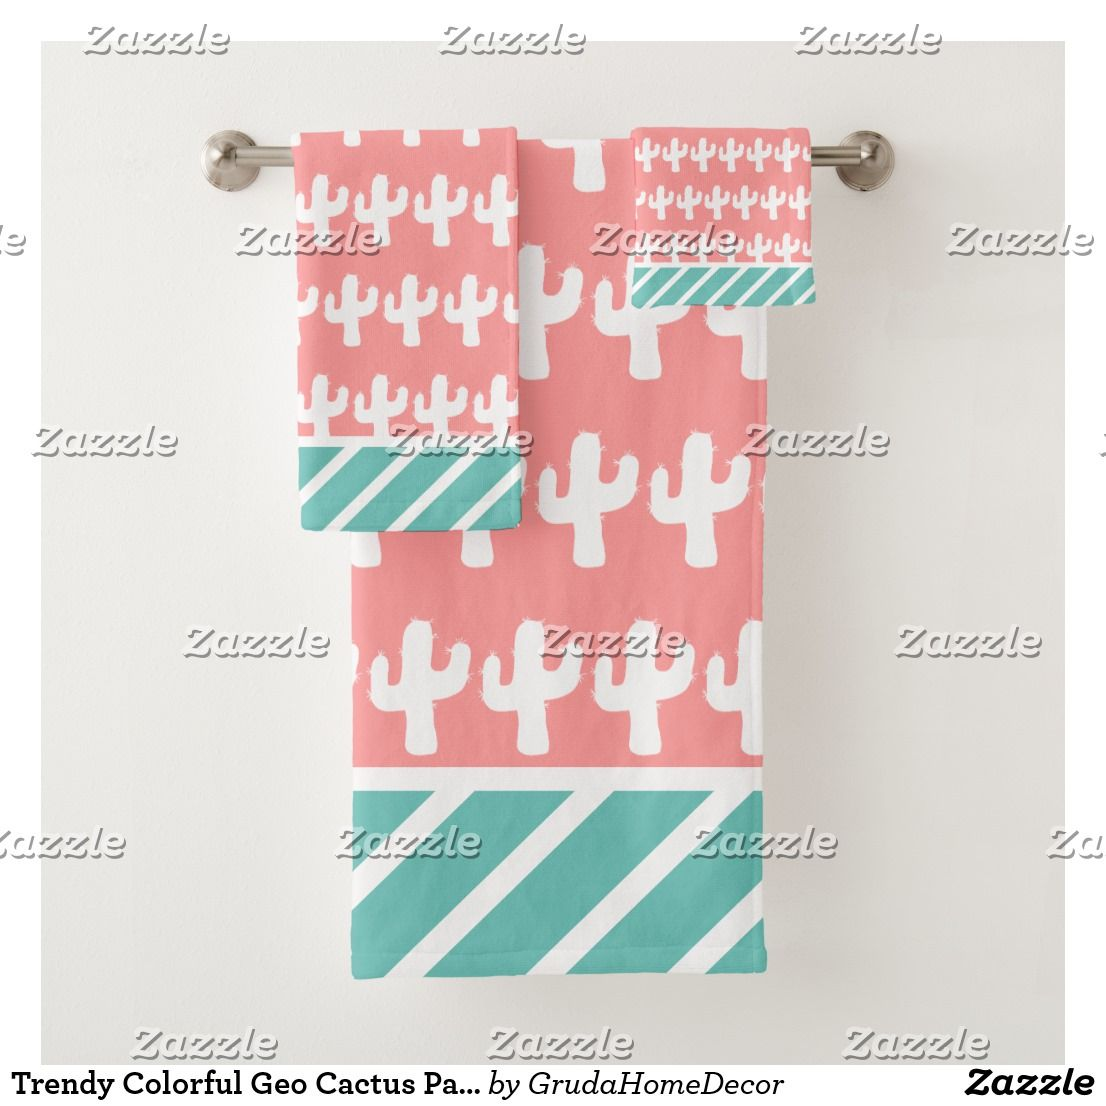 Trendy Colorful Geo Cactus Pattern Bath Towel Set Zazzle Com Patterned Bath Towels Bath Towel Sets Towel Set